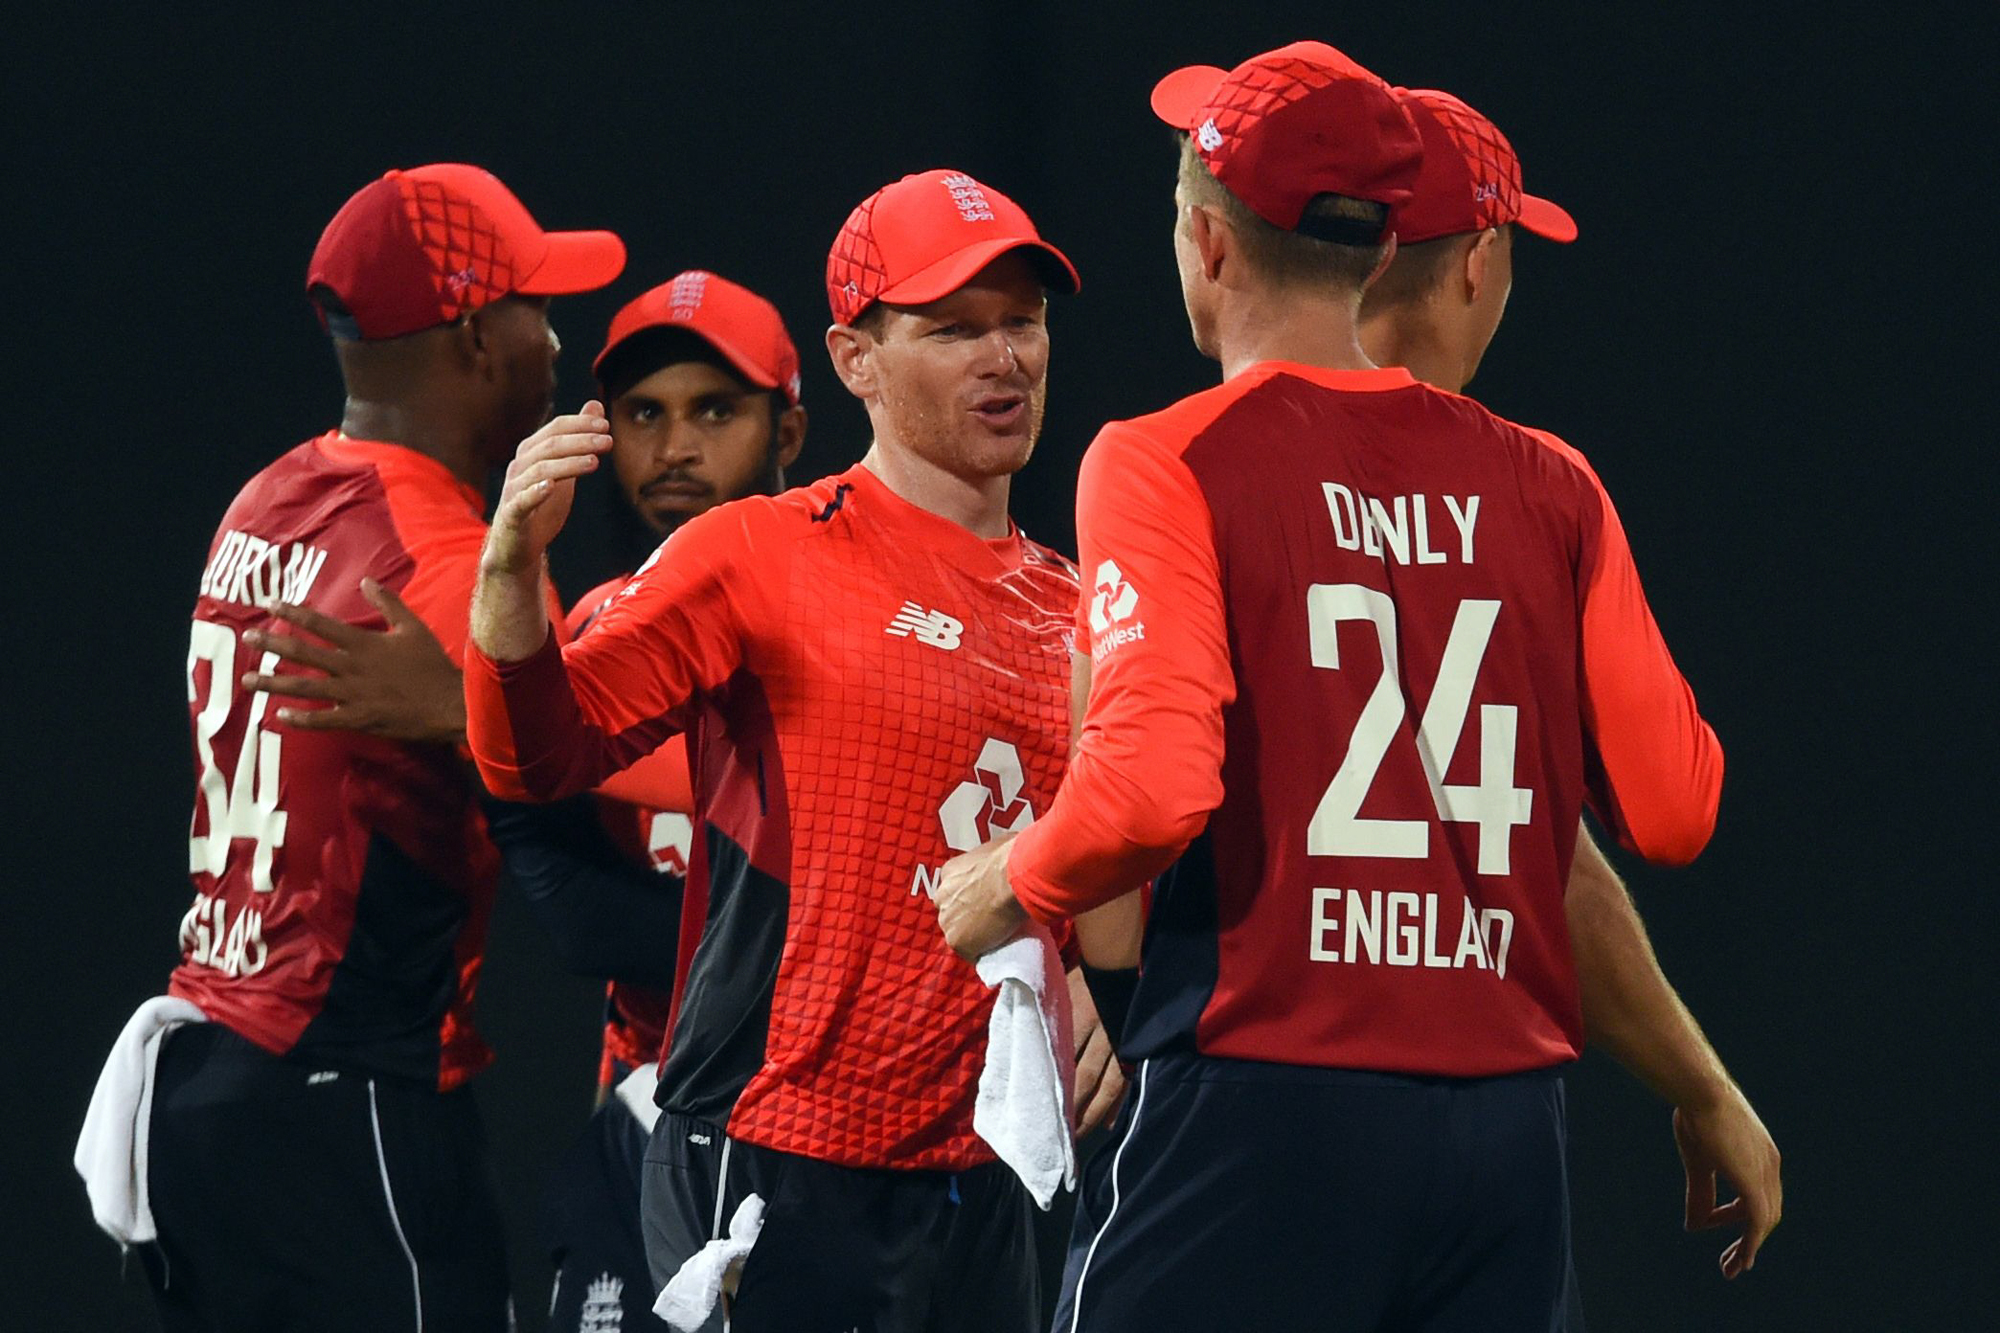 England's captain Eoin Morgan (C) and team celebrate their win in the Twenty20 International cricket match between Sri Lanka and England at the R. Premadasa Stadium in Colombo on October 27, 2018. (Photo by ISHARA S. KODIKARA / AFP)